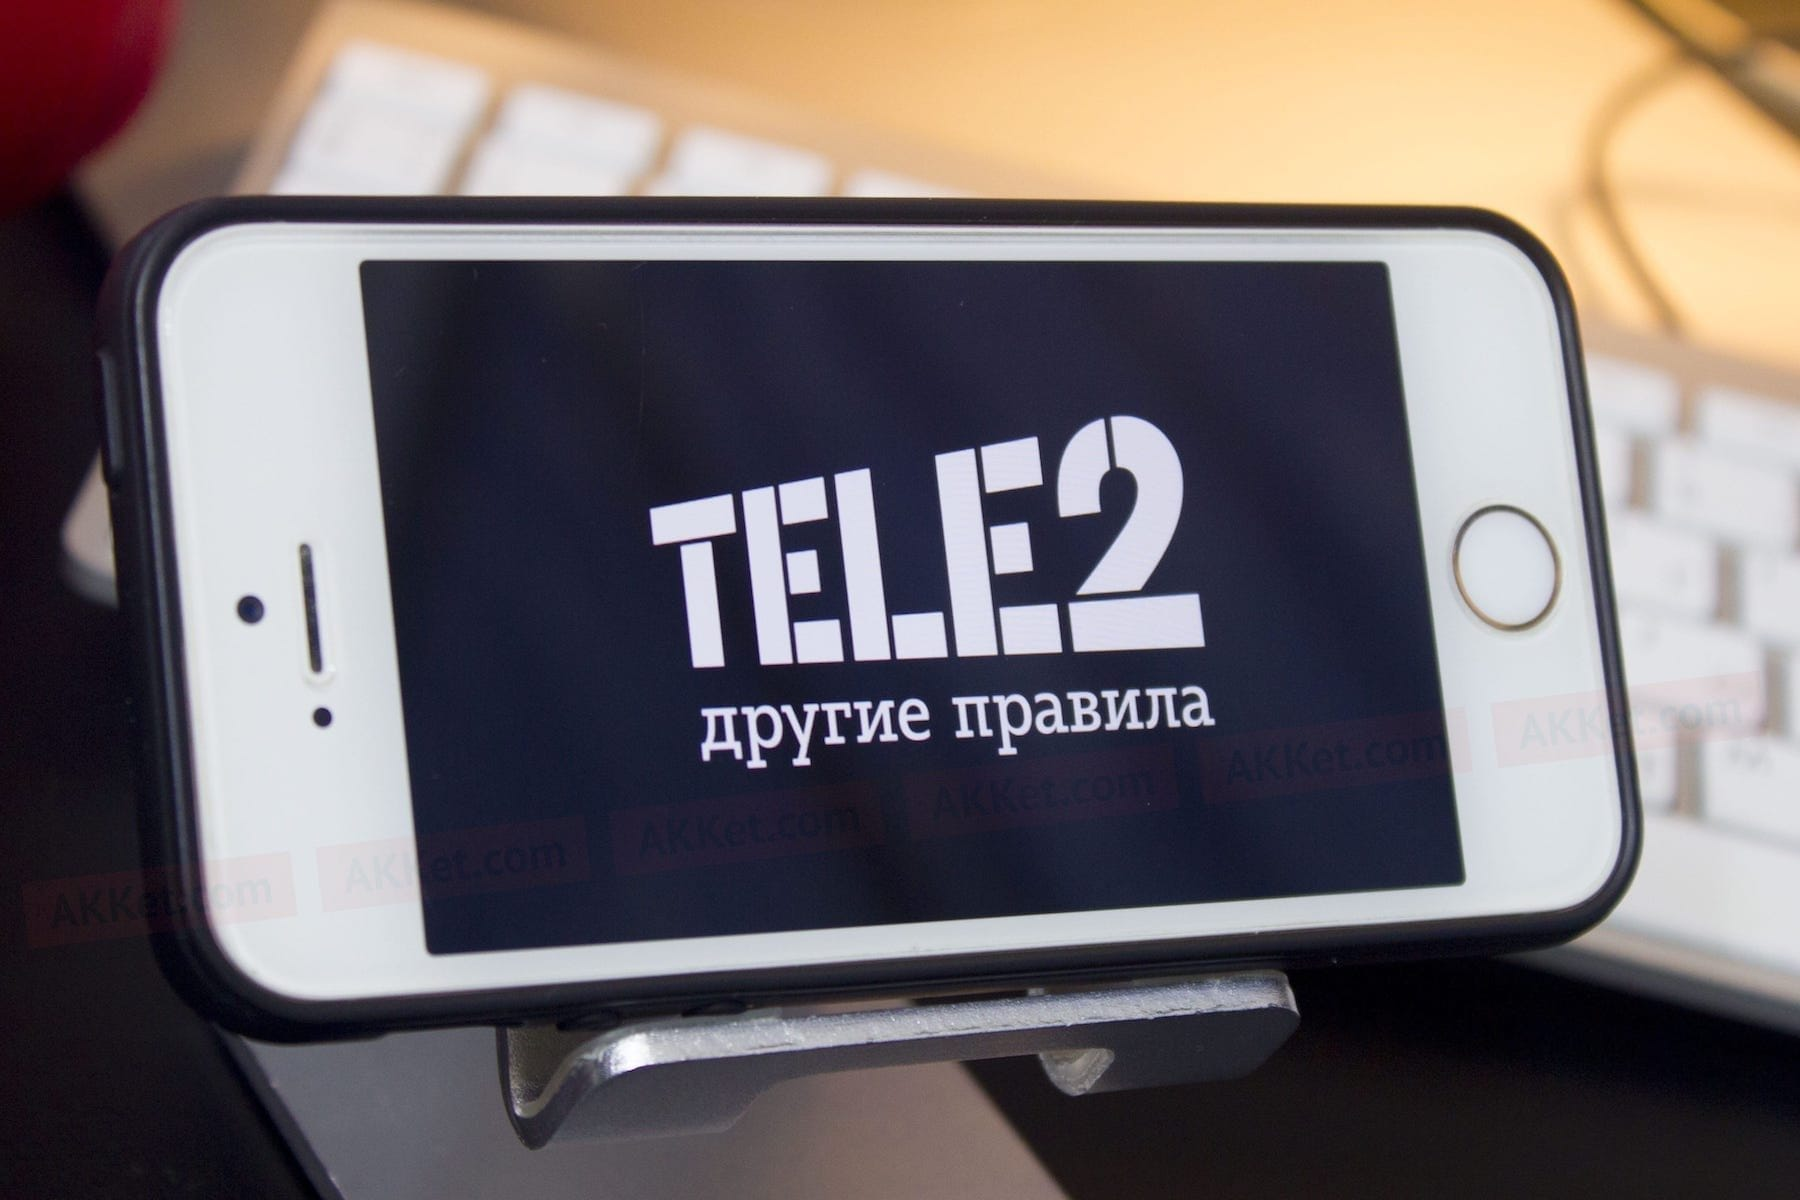 Tele2 recharge phone number Russia with a Guarantee